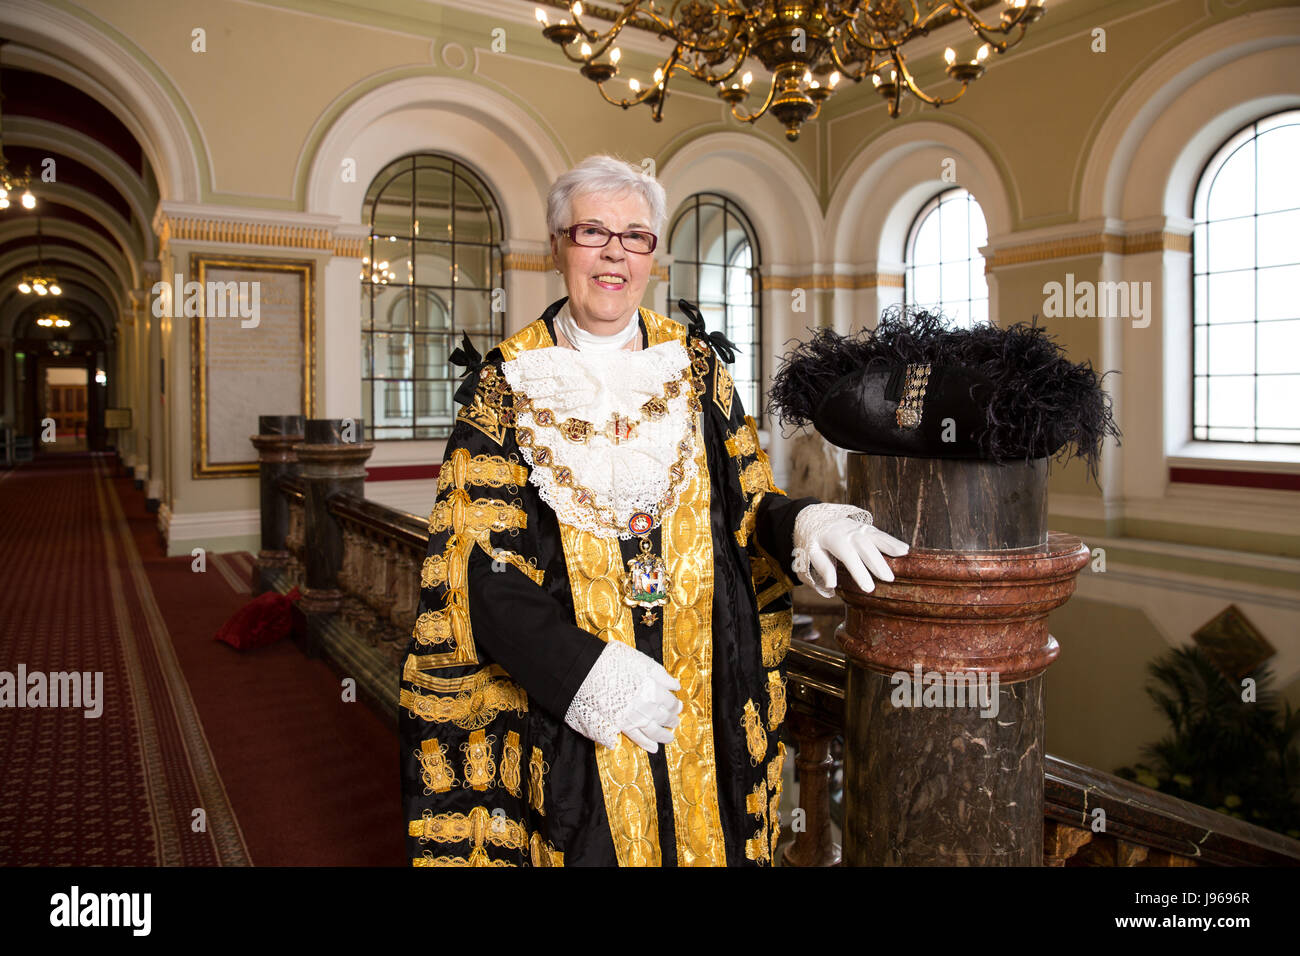 Cllr Anne Underwood becoming Birmingham Lord Mayor - Stock Image